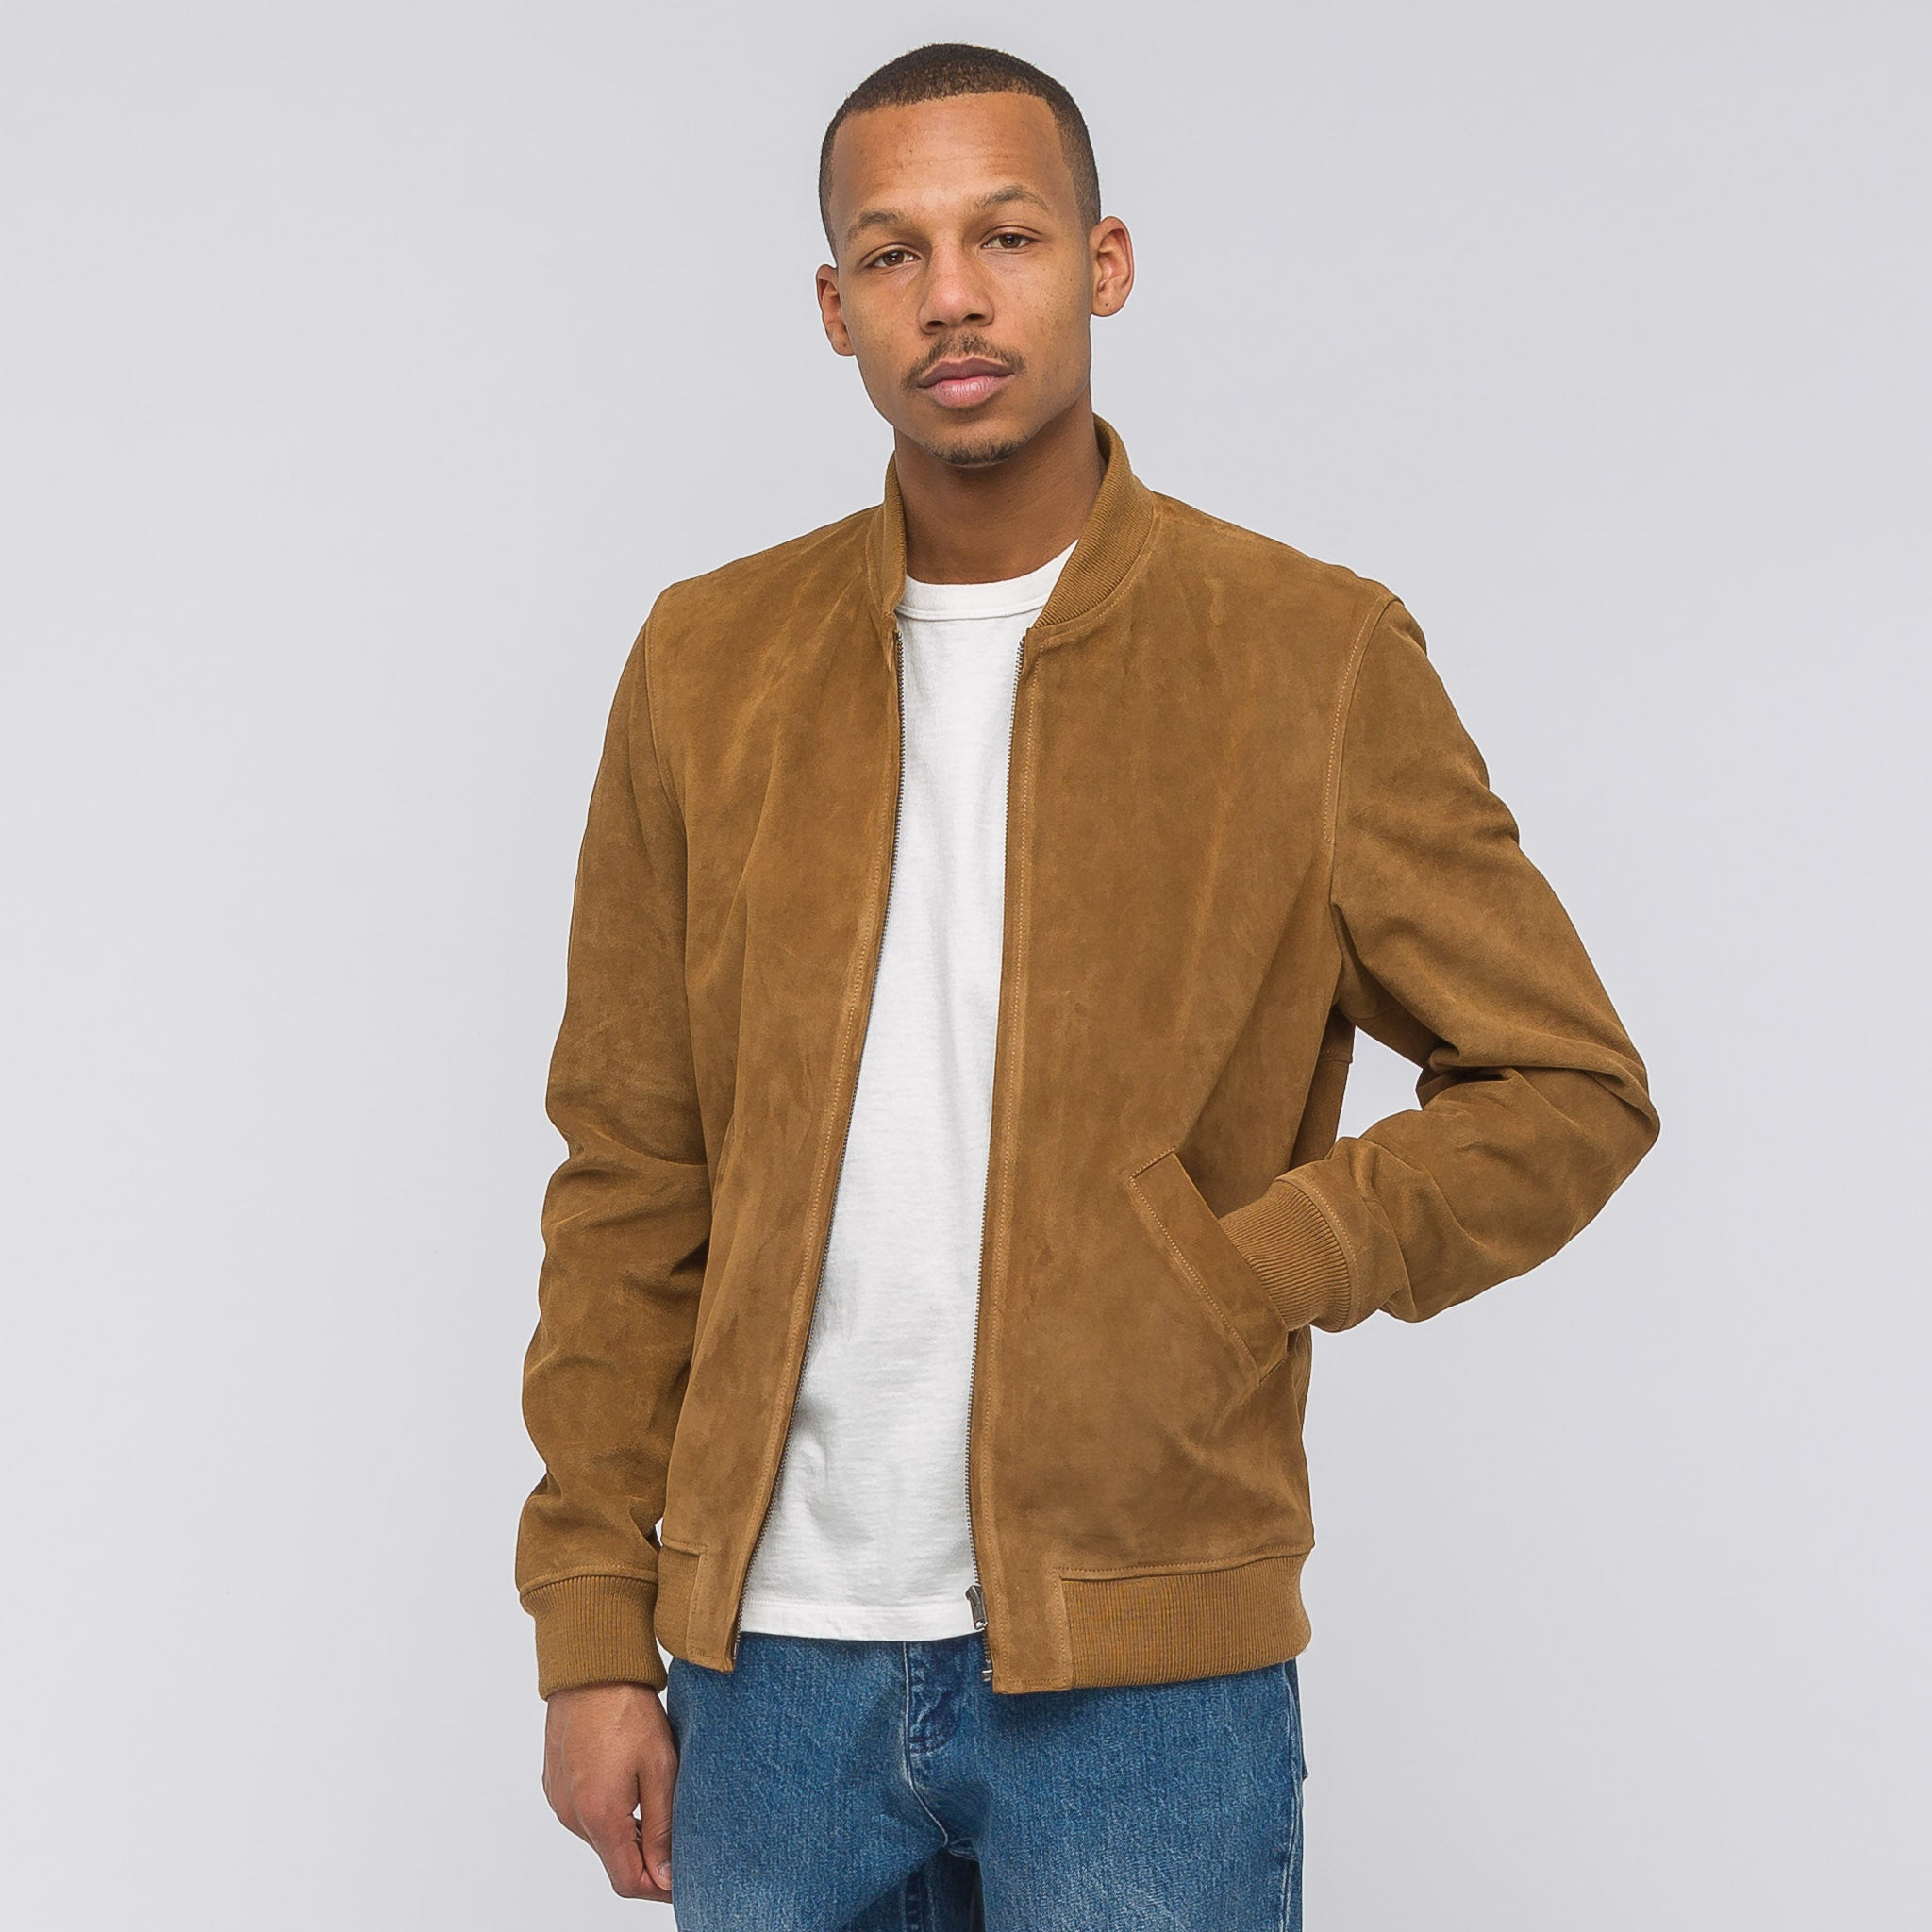 The Ferris Jacket in Tobacco